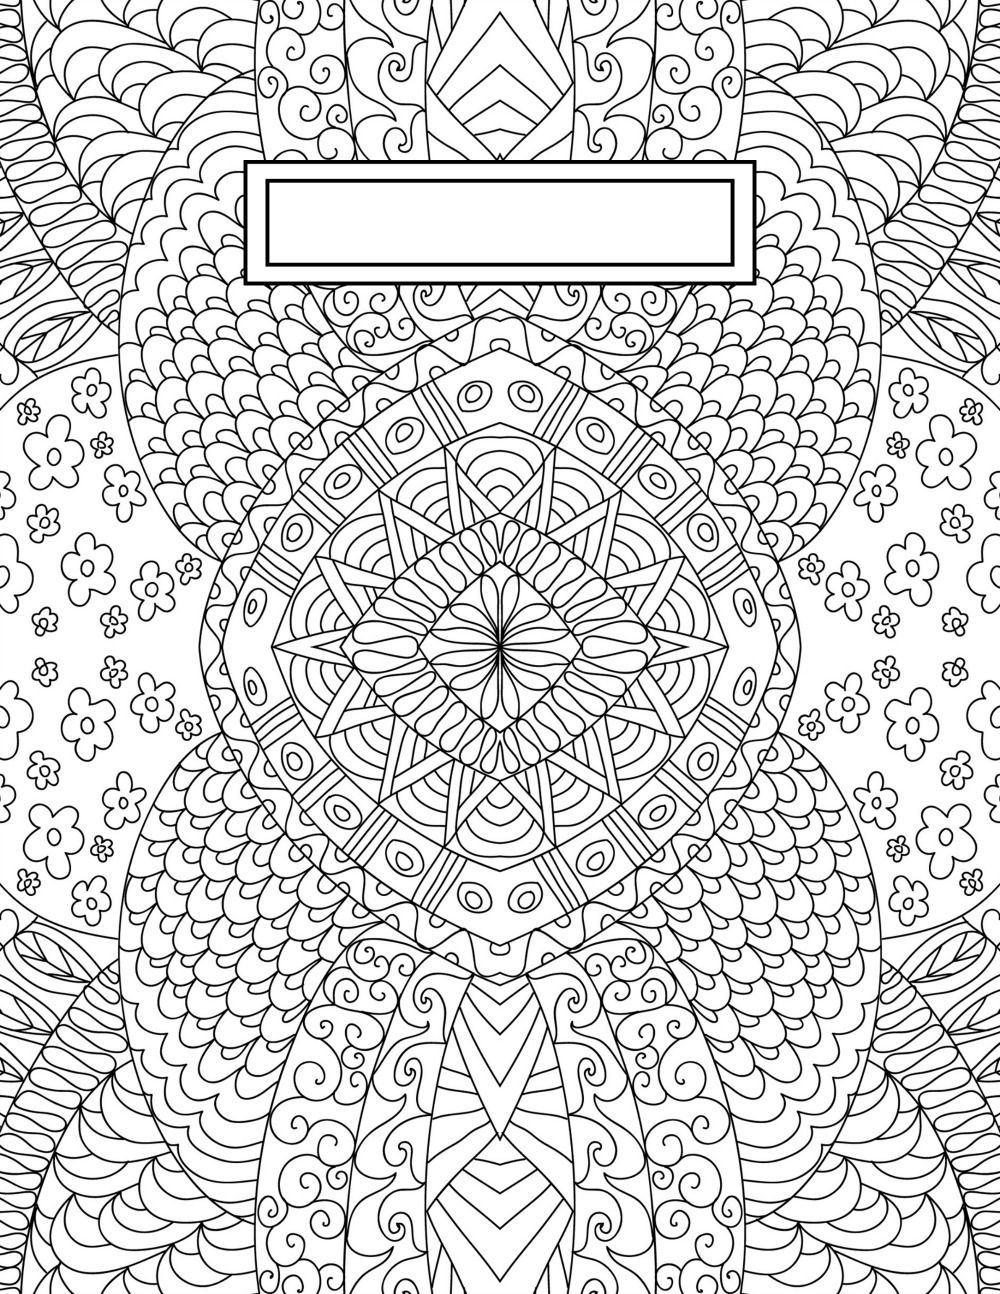 Back To School Binder Cover Adult Coloring Pages | Bullet Journaling - Free Printable Binder Covers To Color